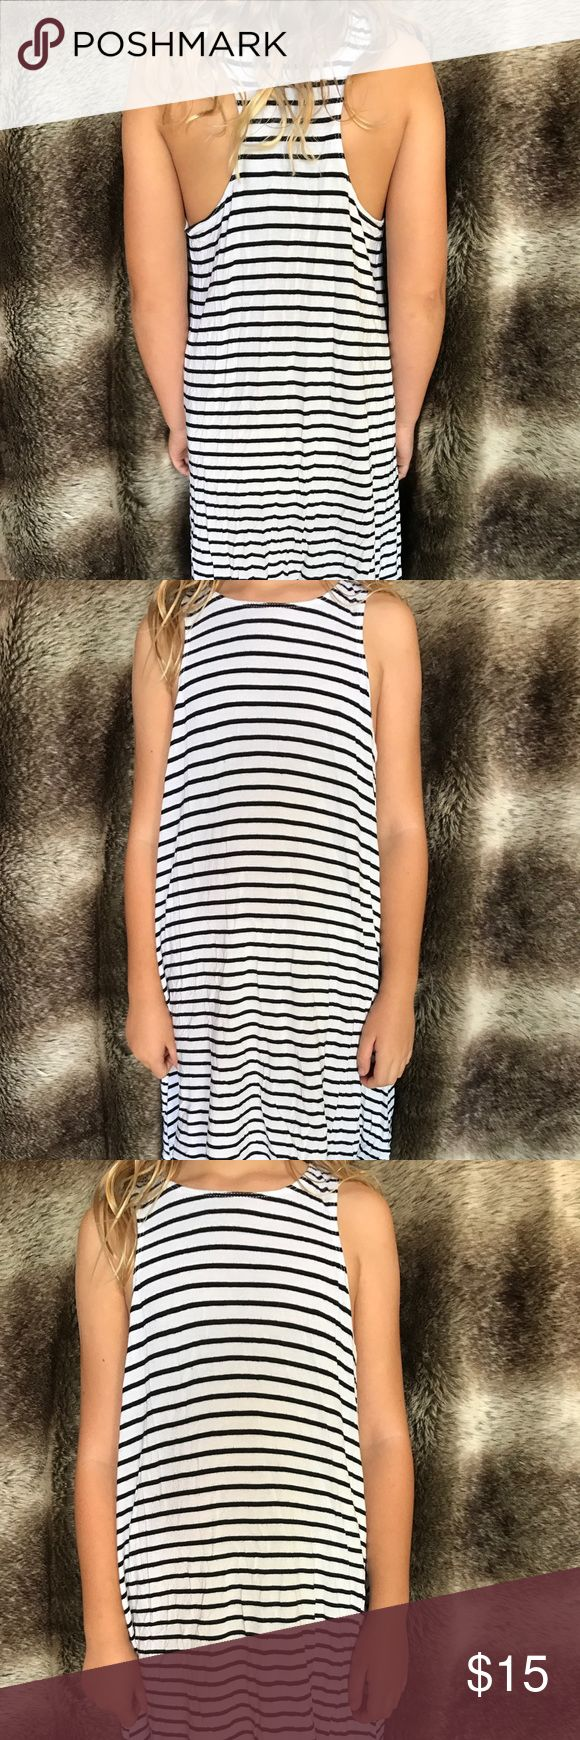 Black and white striped short dress!! Adorable comfy, striped dress!! In great condition! Dresses Mini